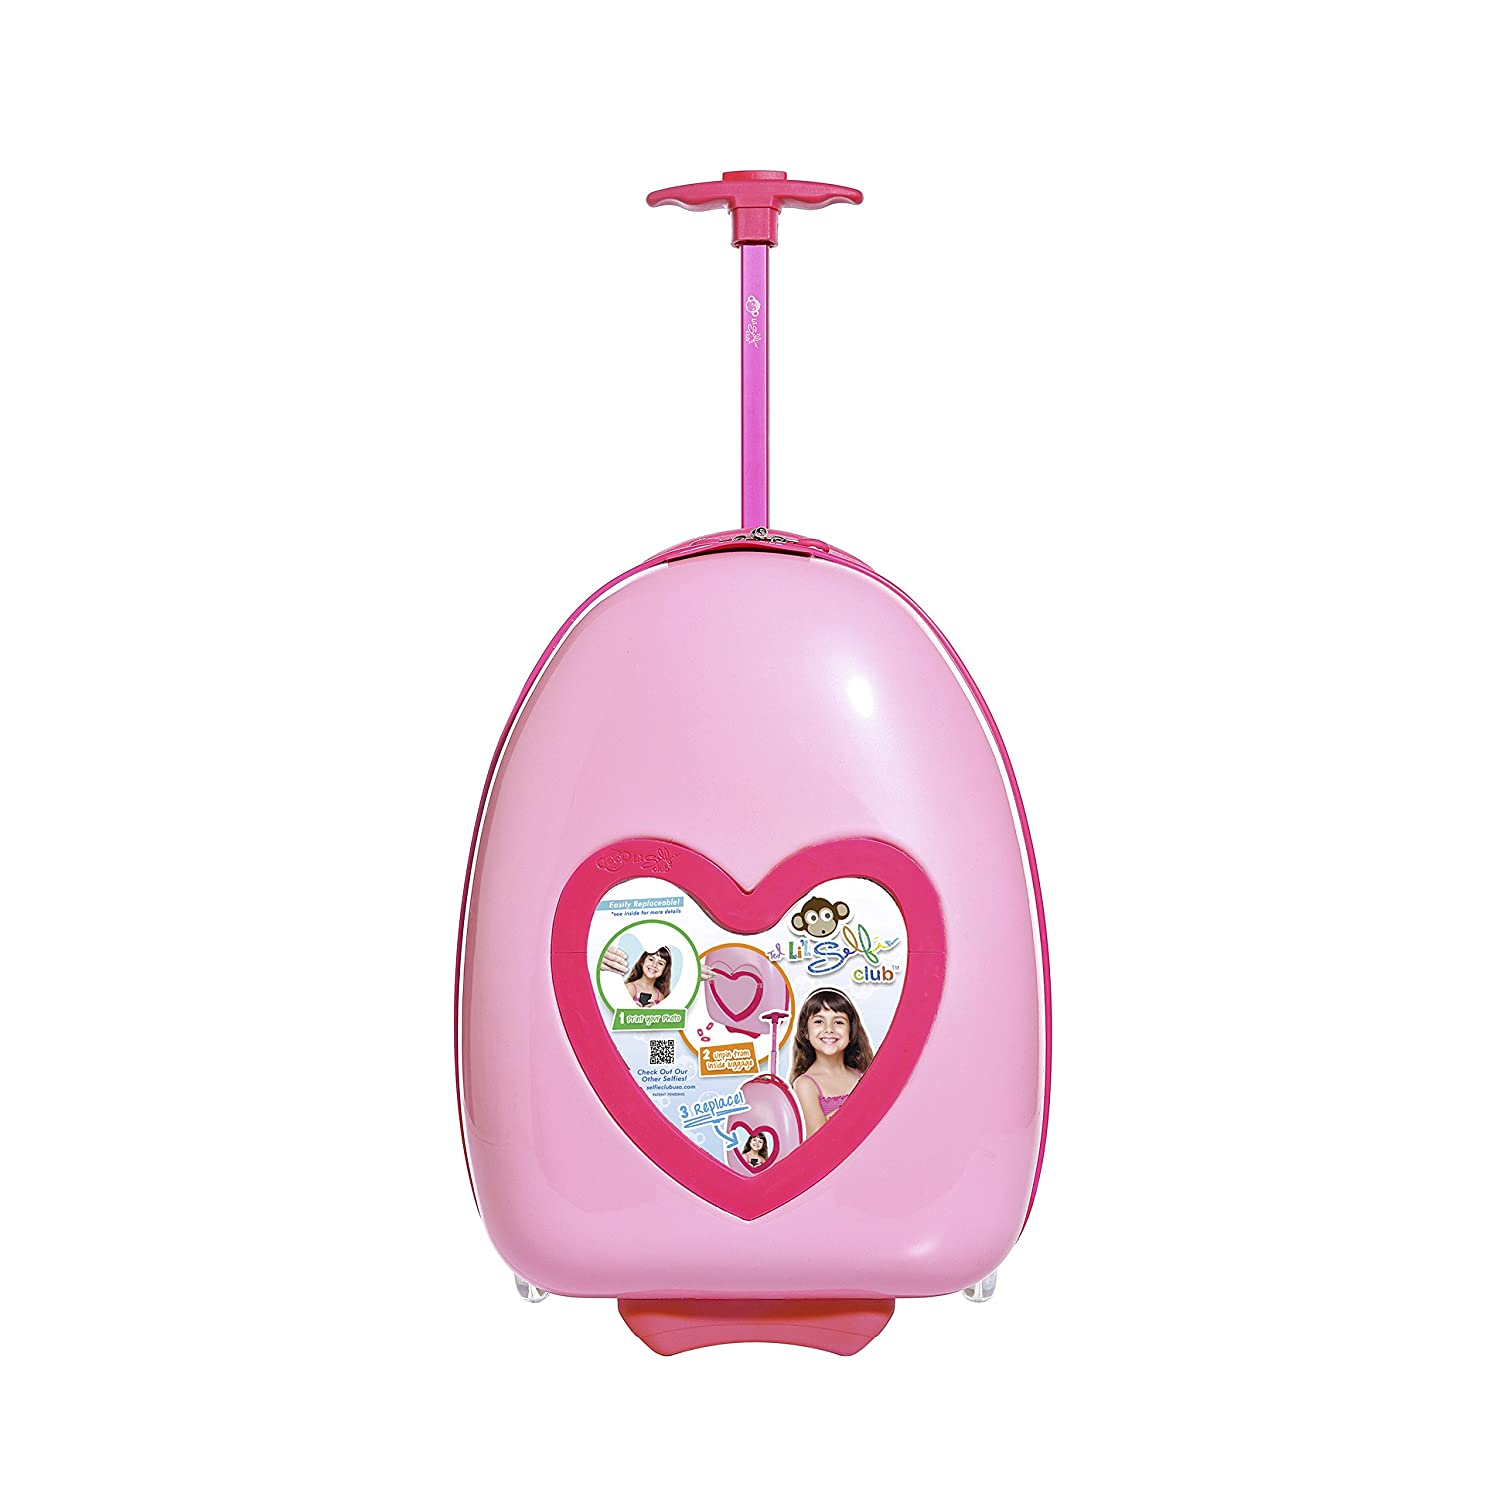 Travelers Club 16 Kids Carry-On Luggage with DIY Replaceable Photo Feature, Pink Heart Color Option